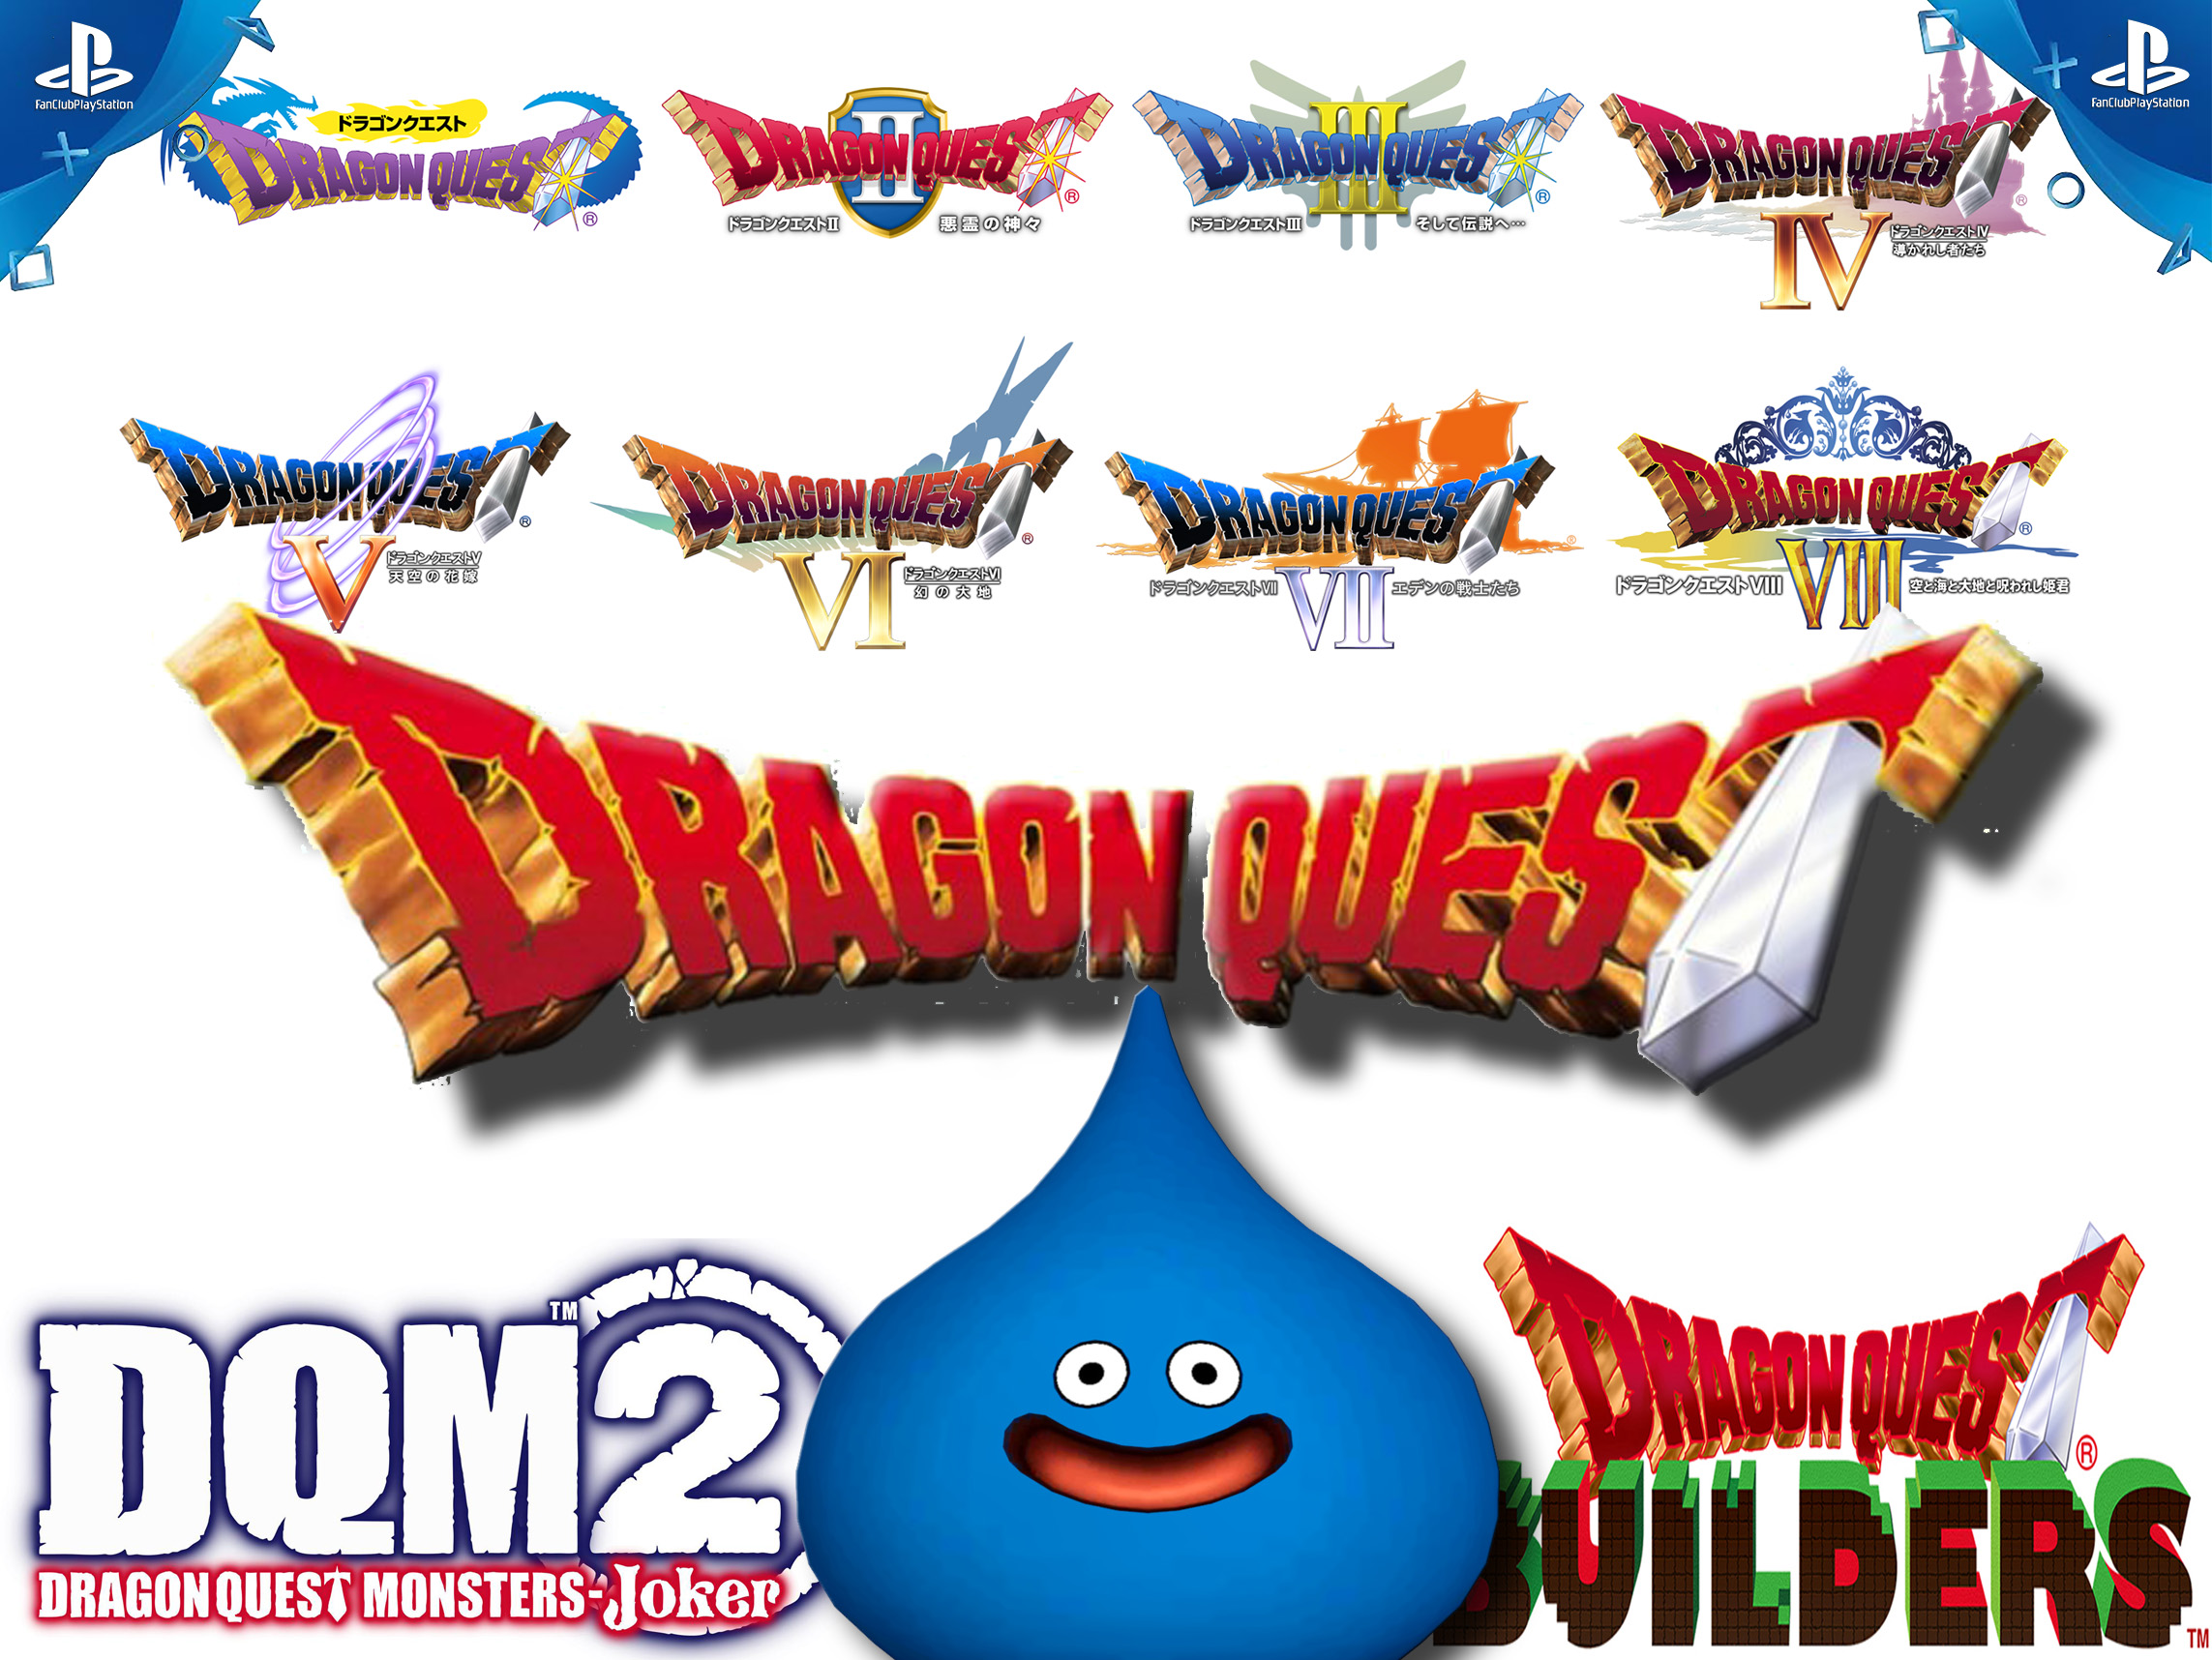 Dragon-quest-builders-2-illustration